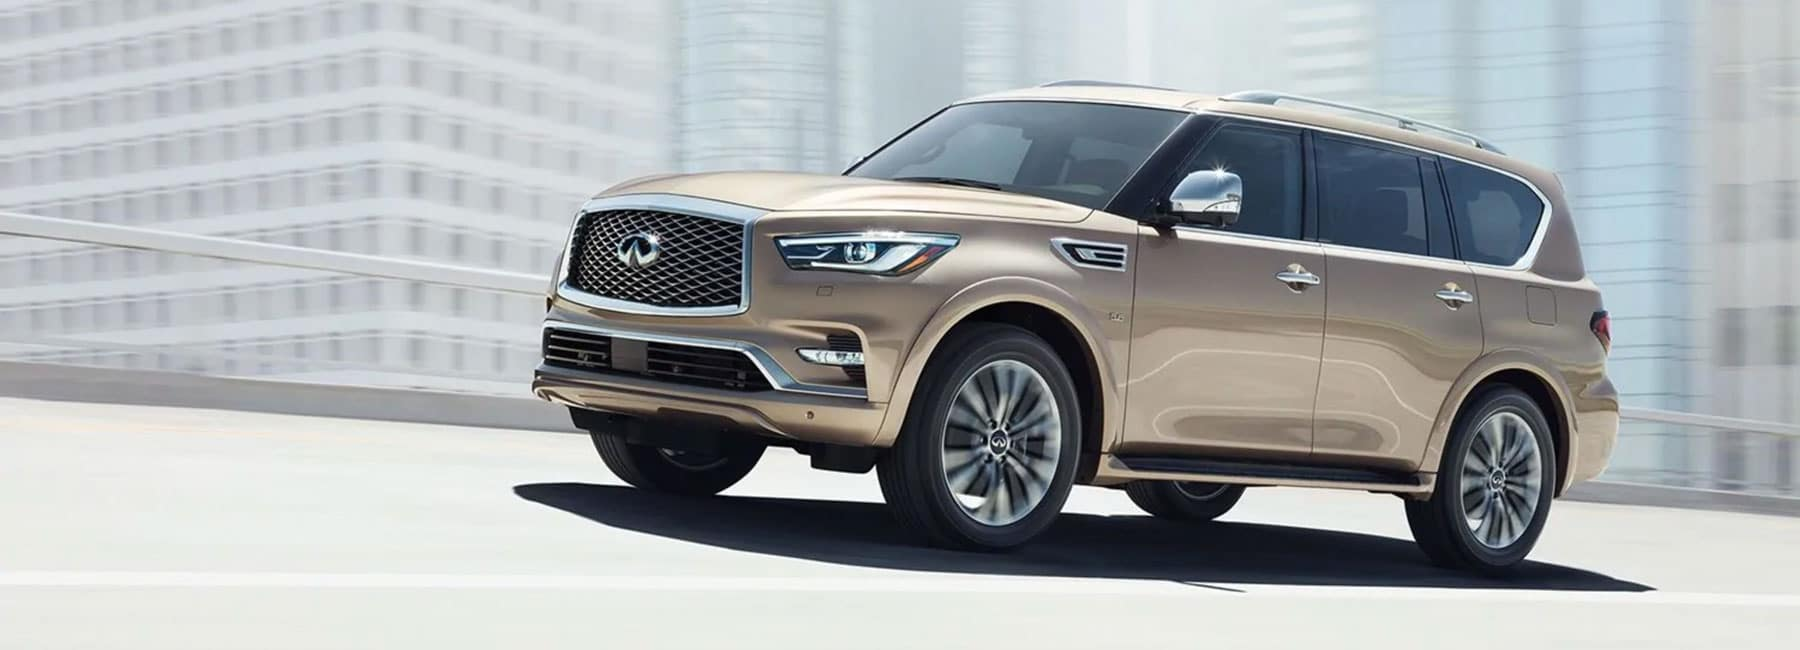 2019 INFINITY QX80 at Germain INFINITI of Easton